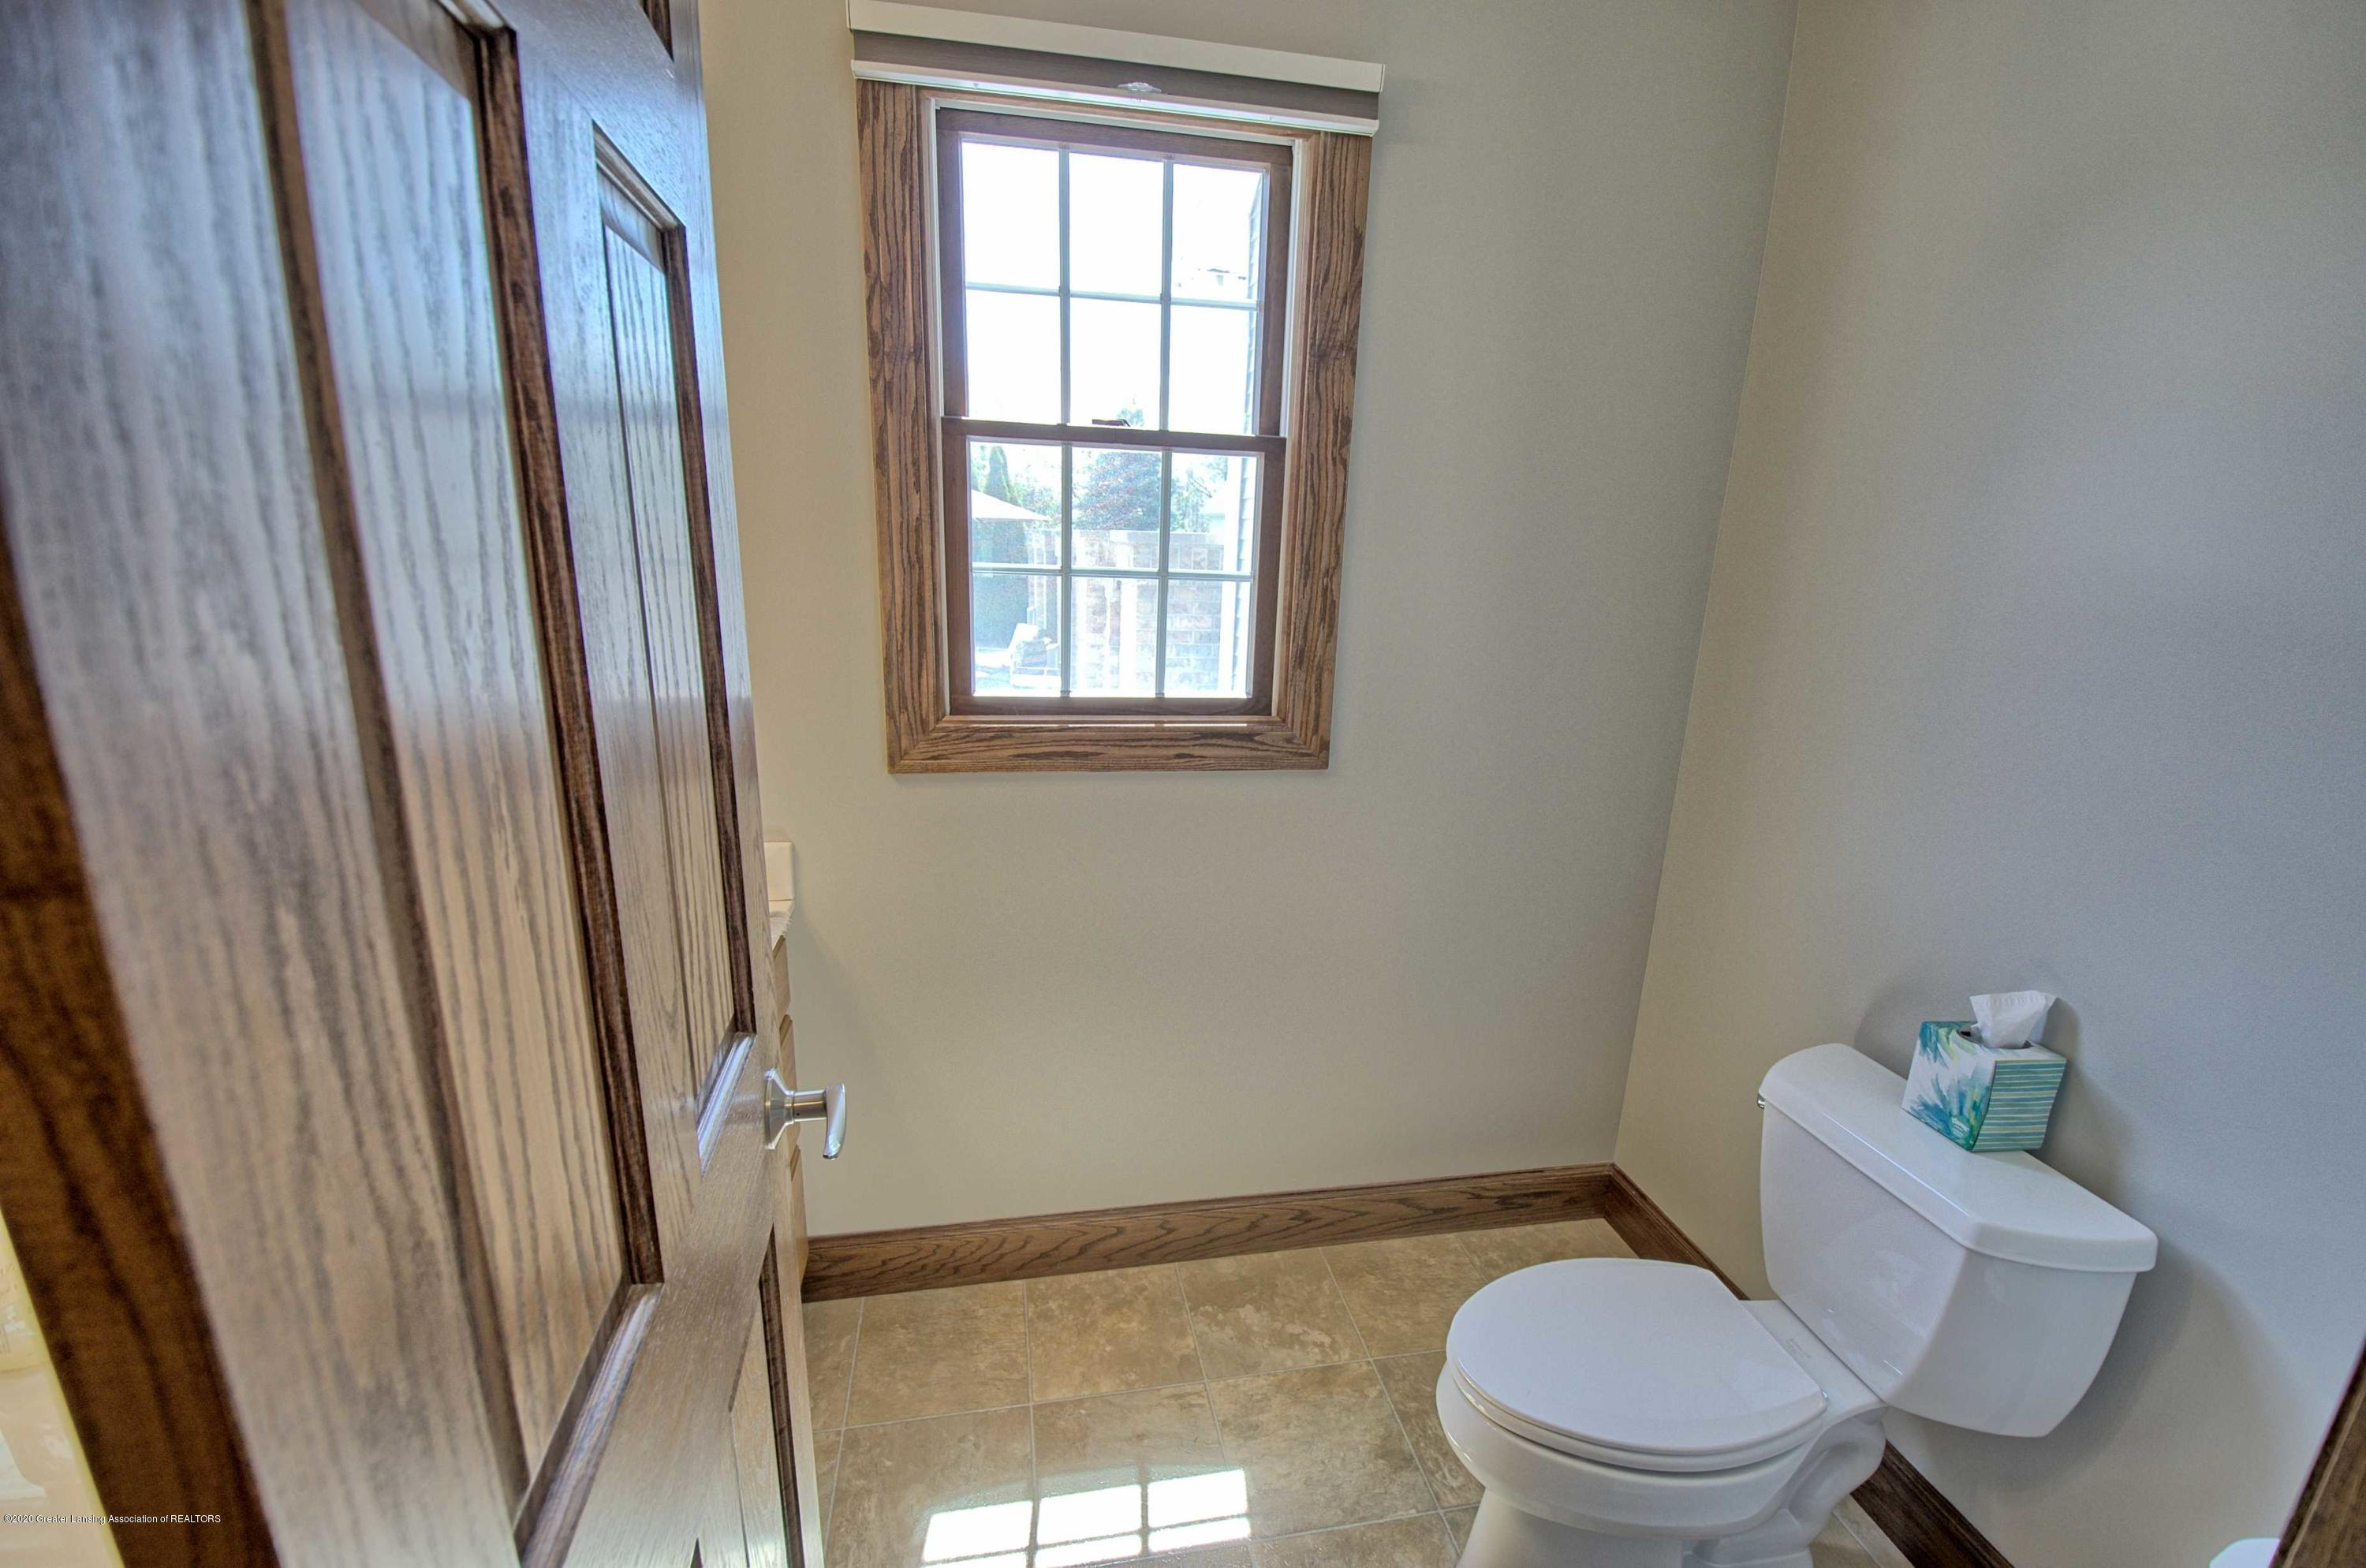 2615 Hummingbird Ln - 1ST FLOOR HALF BATH - 23